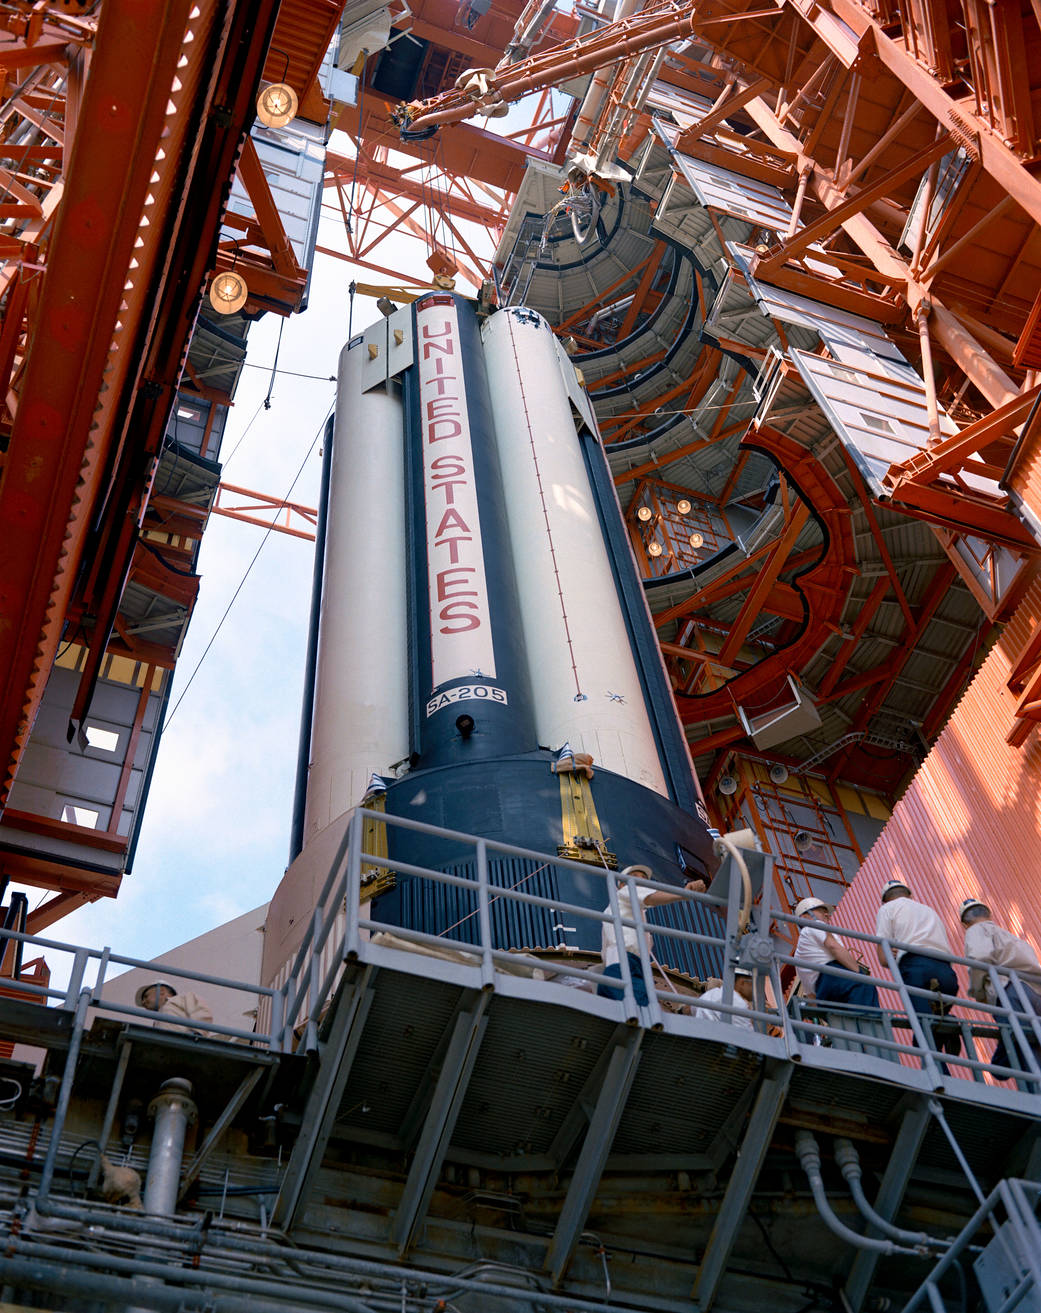 This week in 1968, Apollo 7 launched from NASA's Kennedy Space Center.